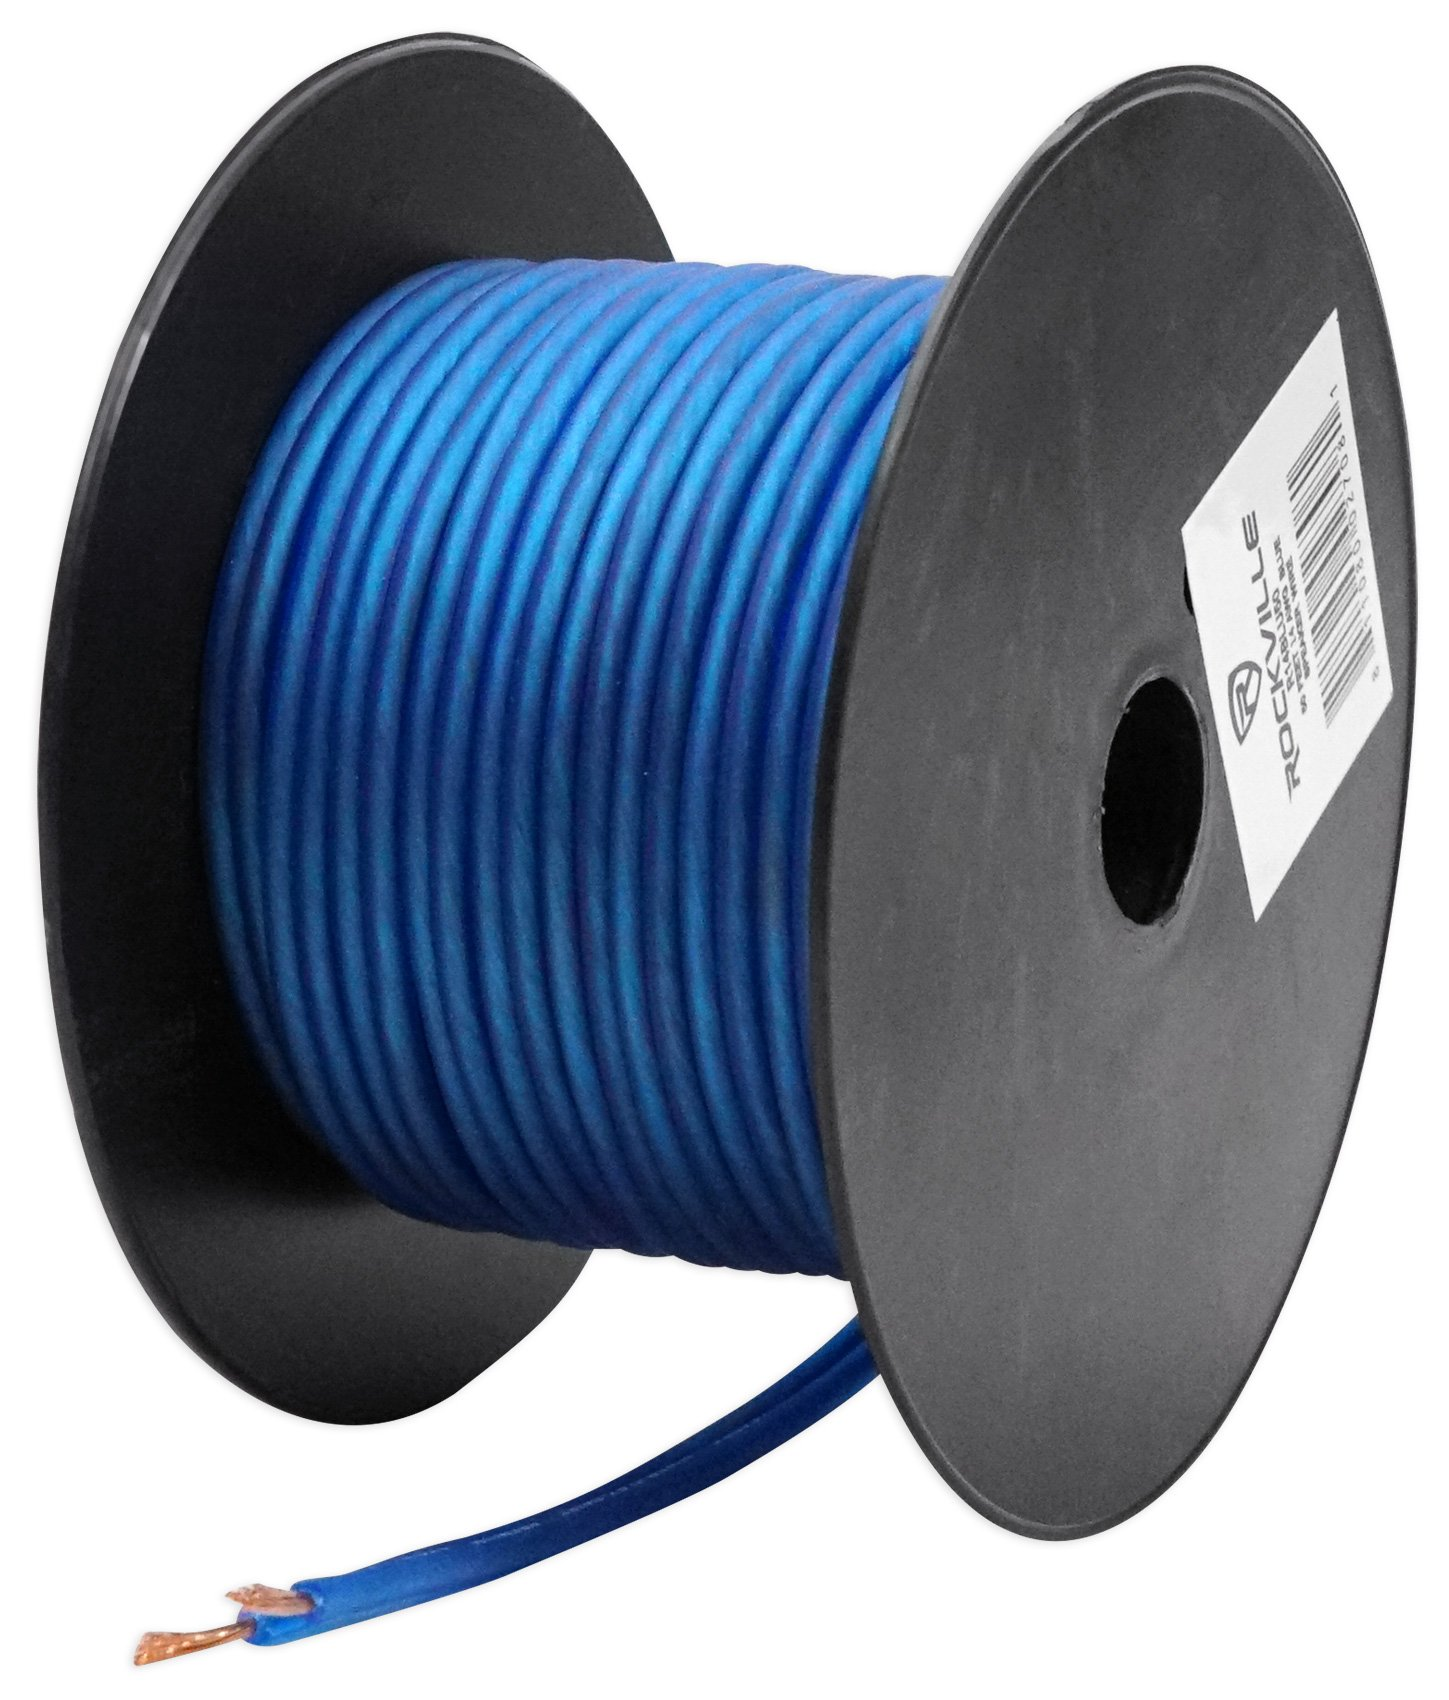 Best Rated In Car Speaker Wire Helpful Customer Reviews Audio Wiring Rockville R14gblu50 Blue 14 Gauge 50 Foot Mini Spool Product Image